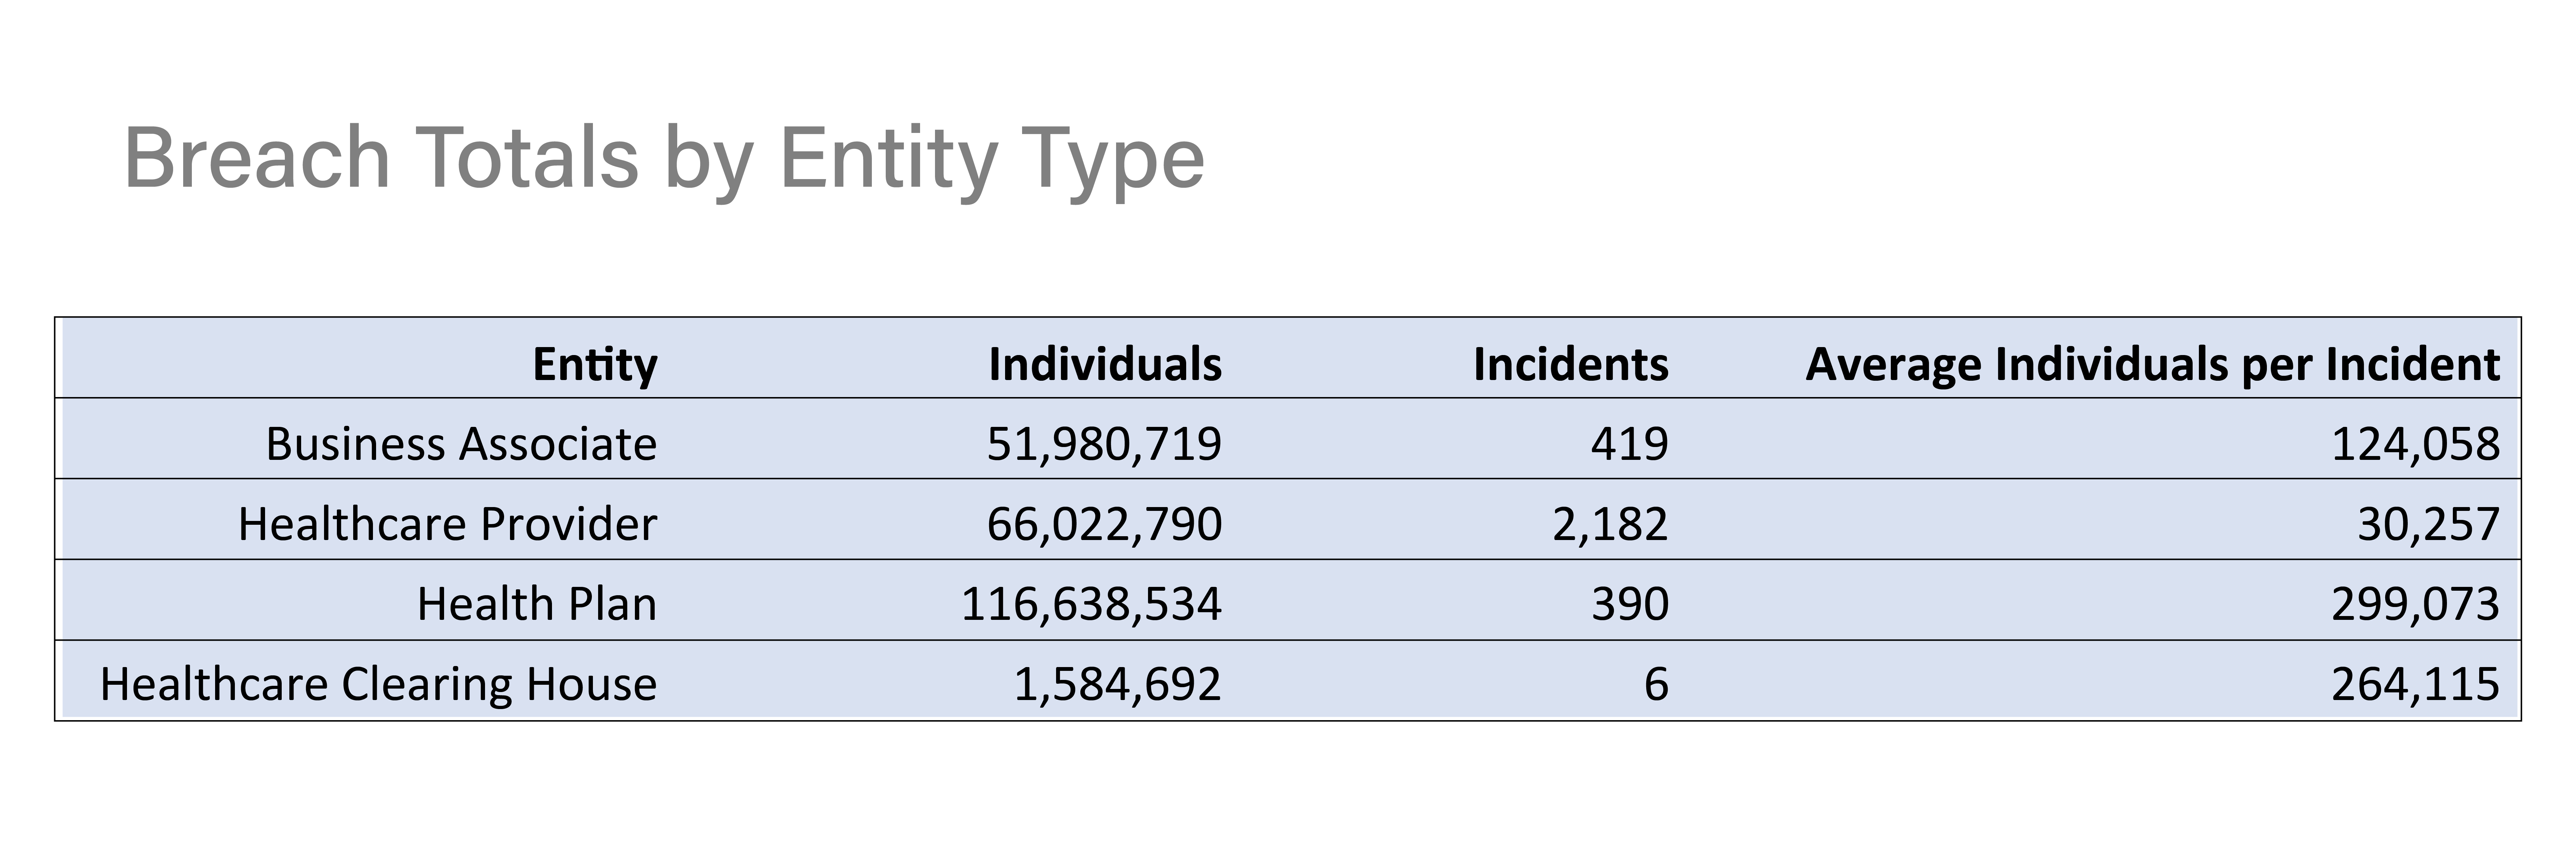 Number of Incidents per Entity Type